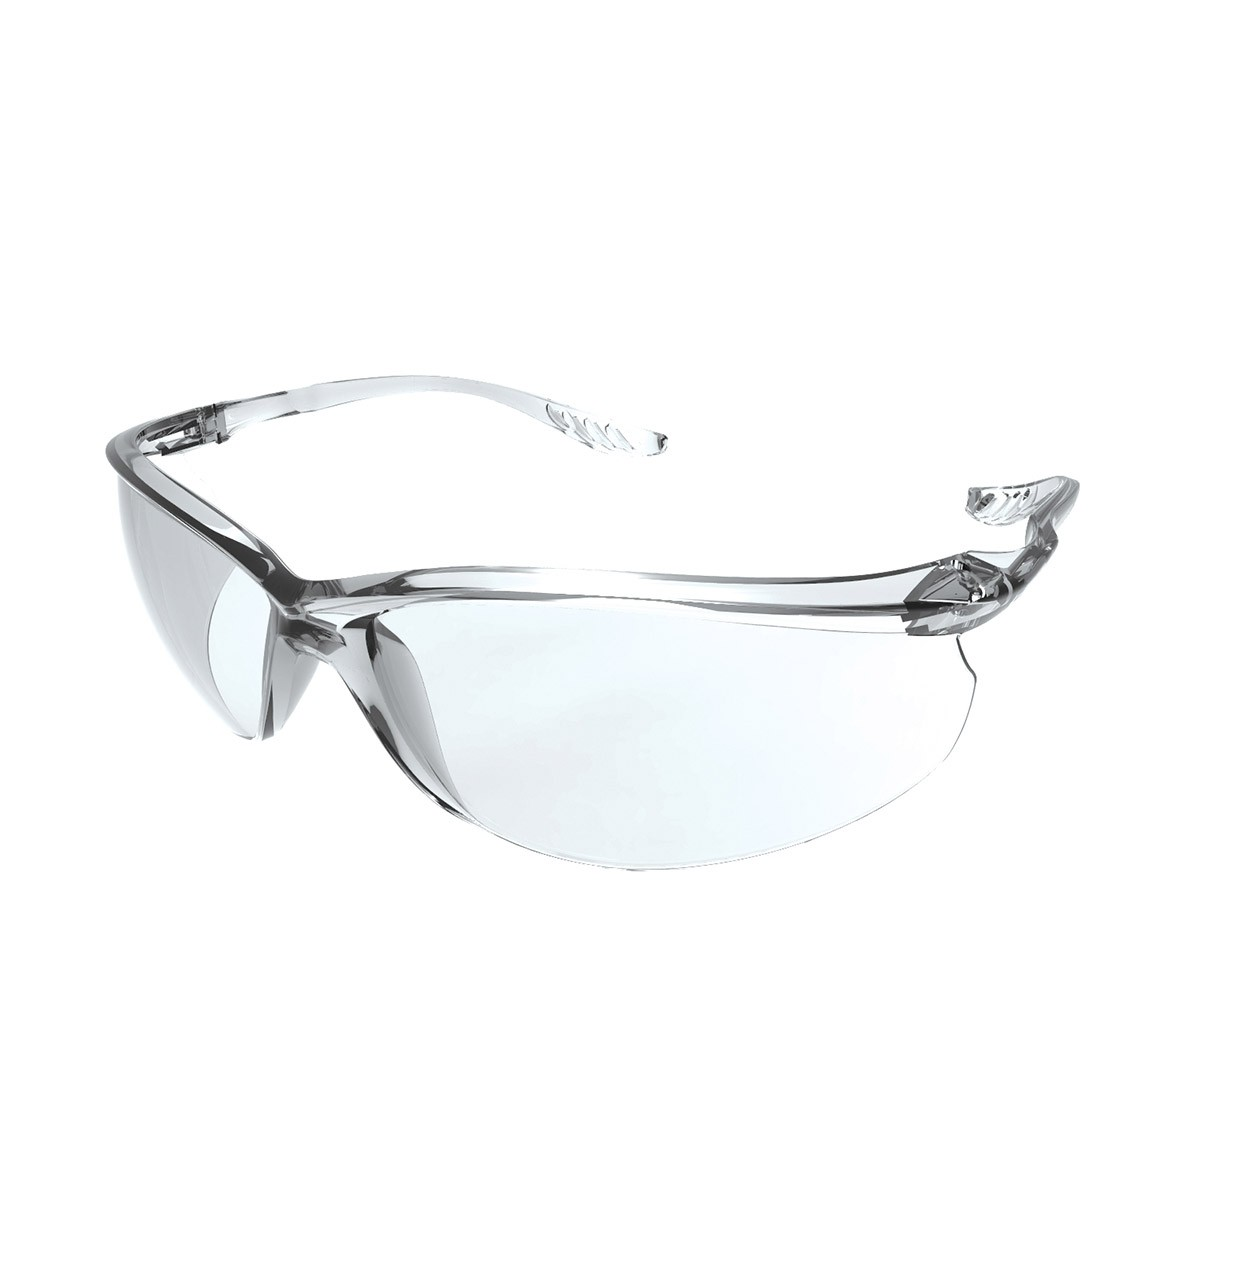 2c0c0720c36 Portwest PW14 Lite Safety Spectacle